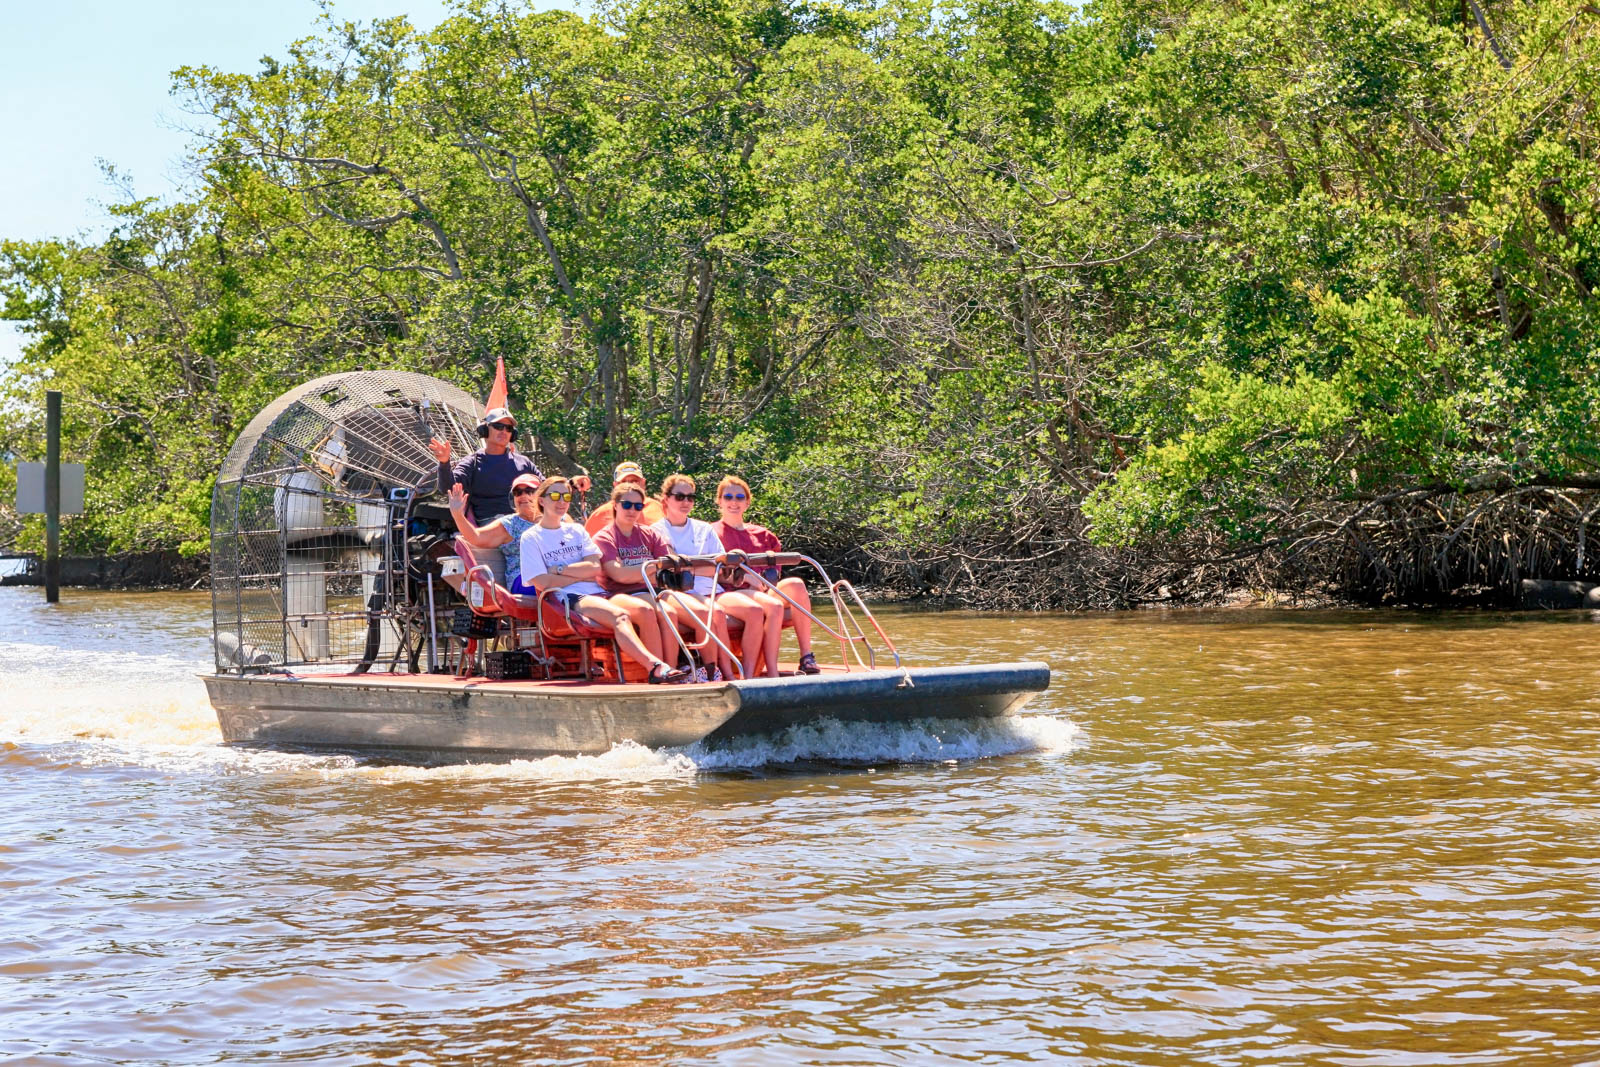 Airboats on a tour of the mangrove swamps in the Everglades. The best day trips from Miami happen in South Florida, including Everglades National Park.